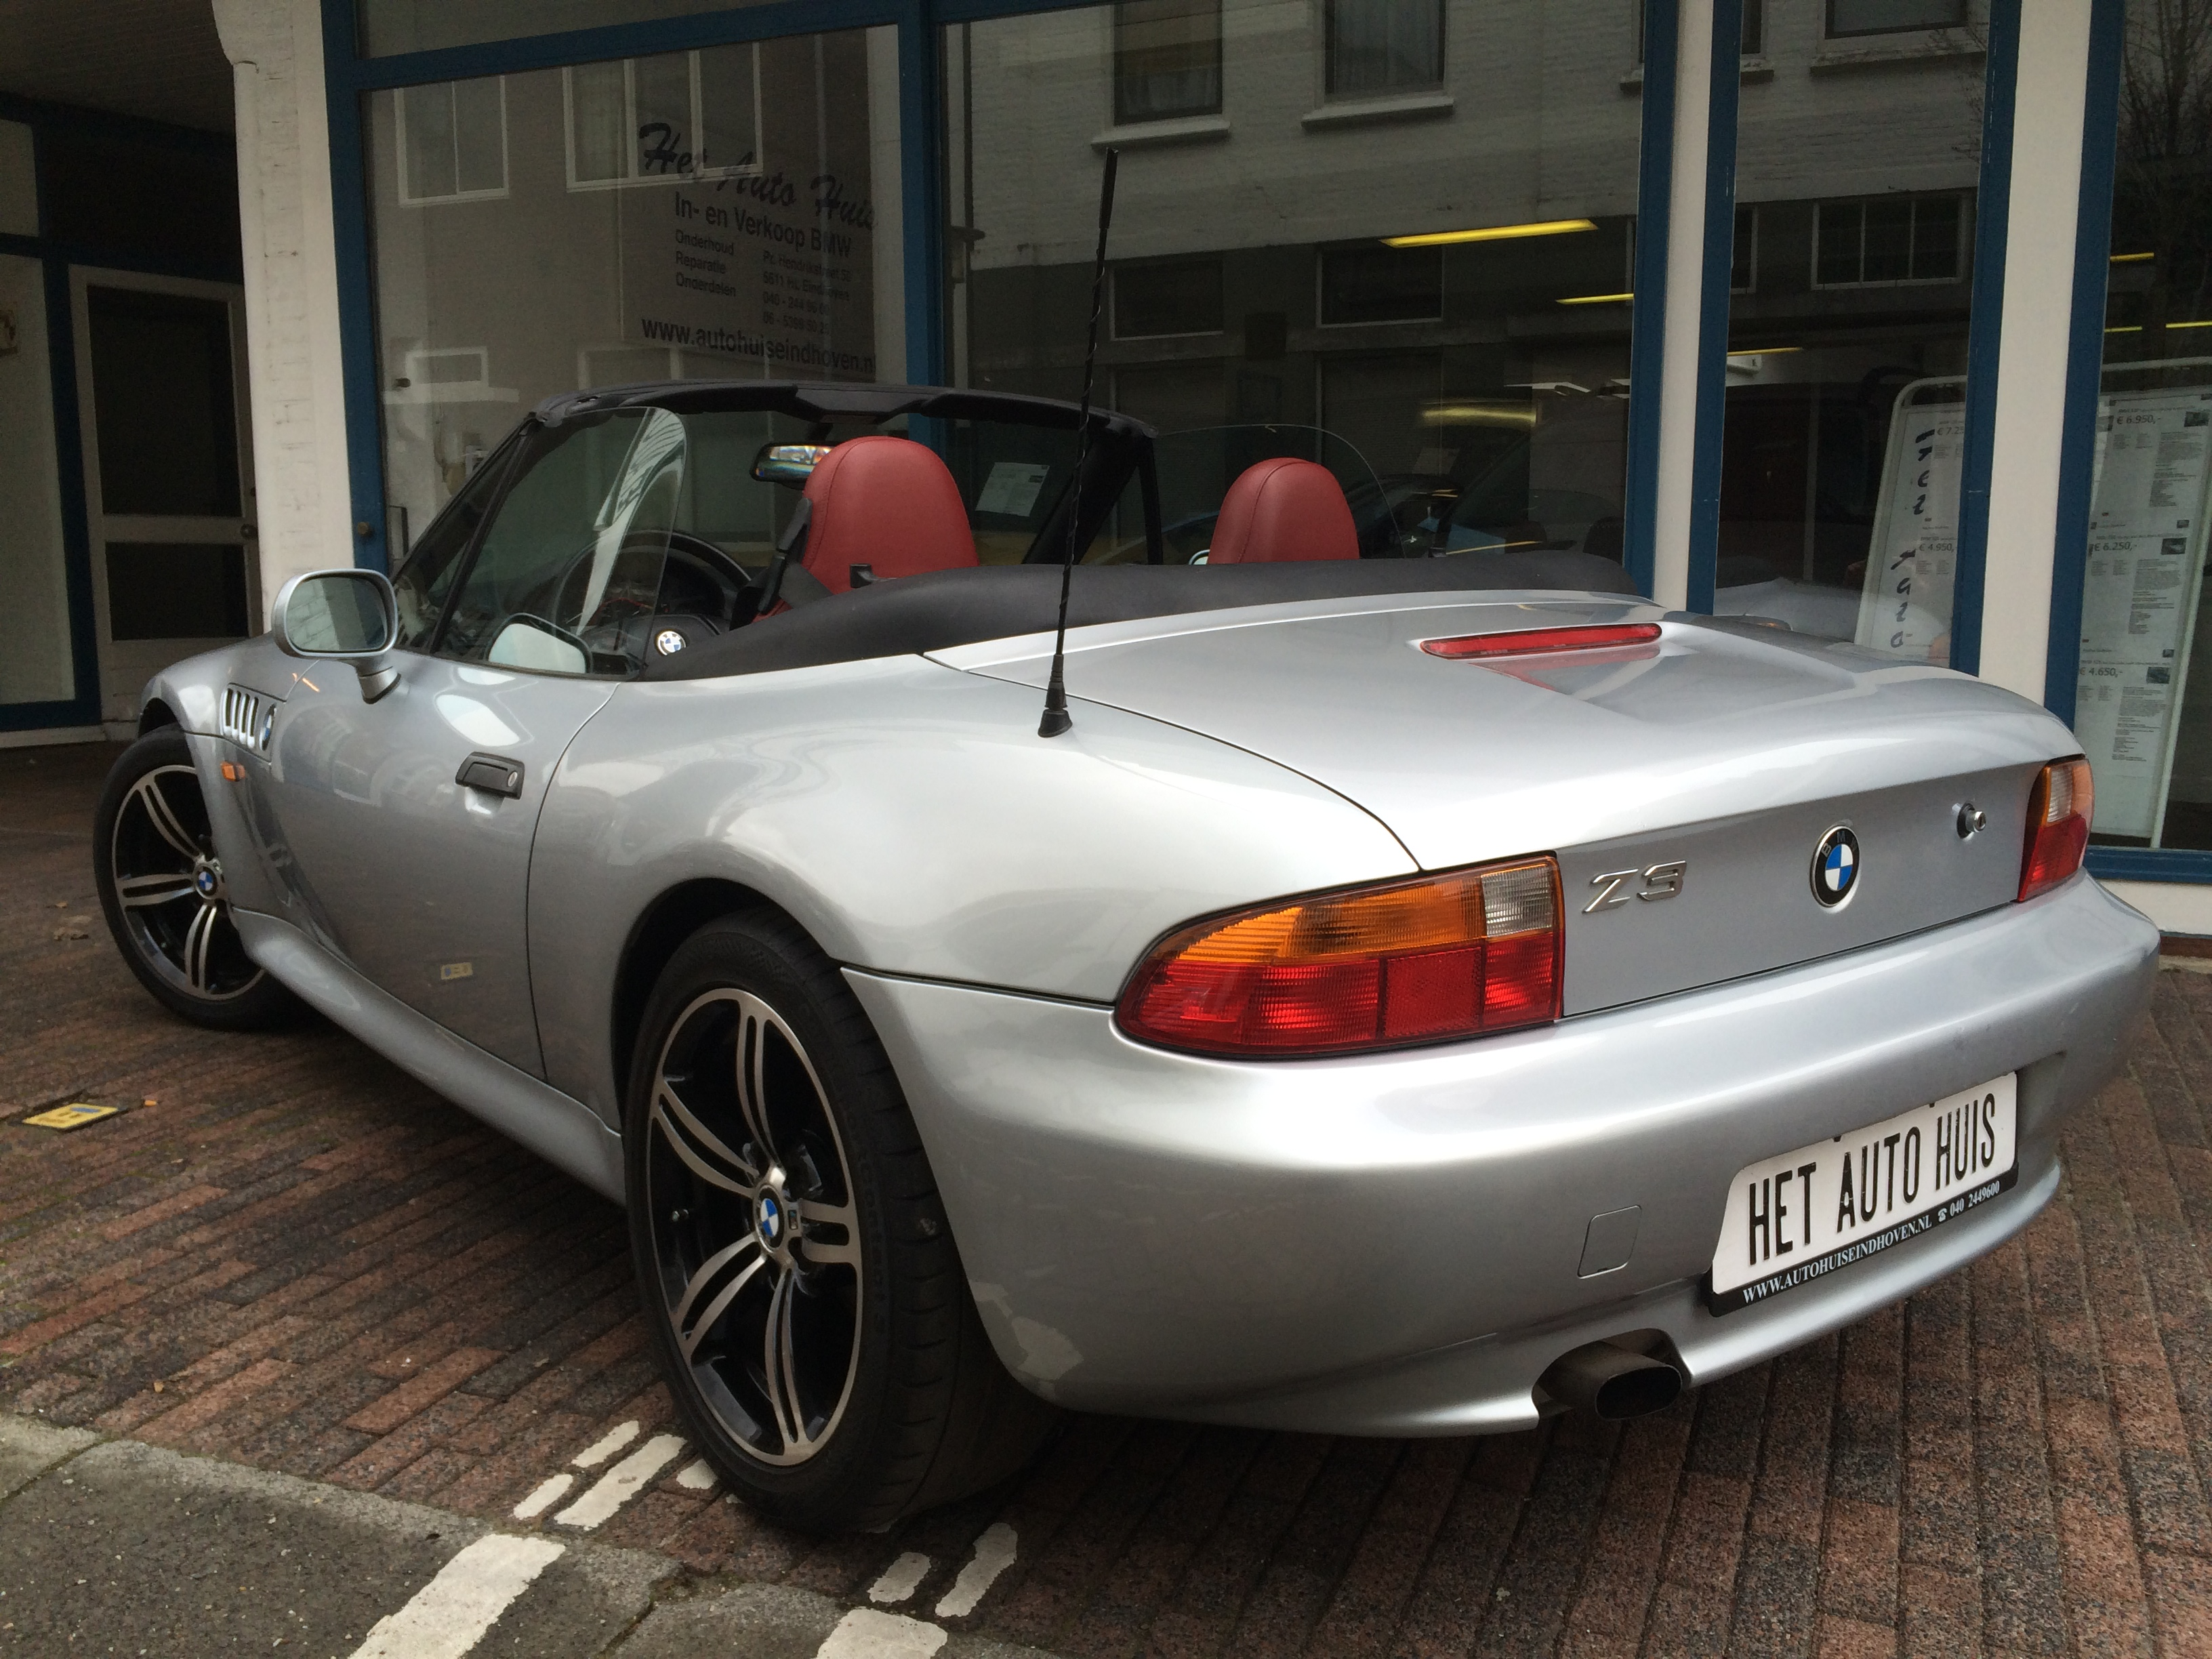 bmw z3 cabrio 1997 autohuis eindhoven. Black Bedroom Furniture Sets. Home Design Ideas